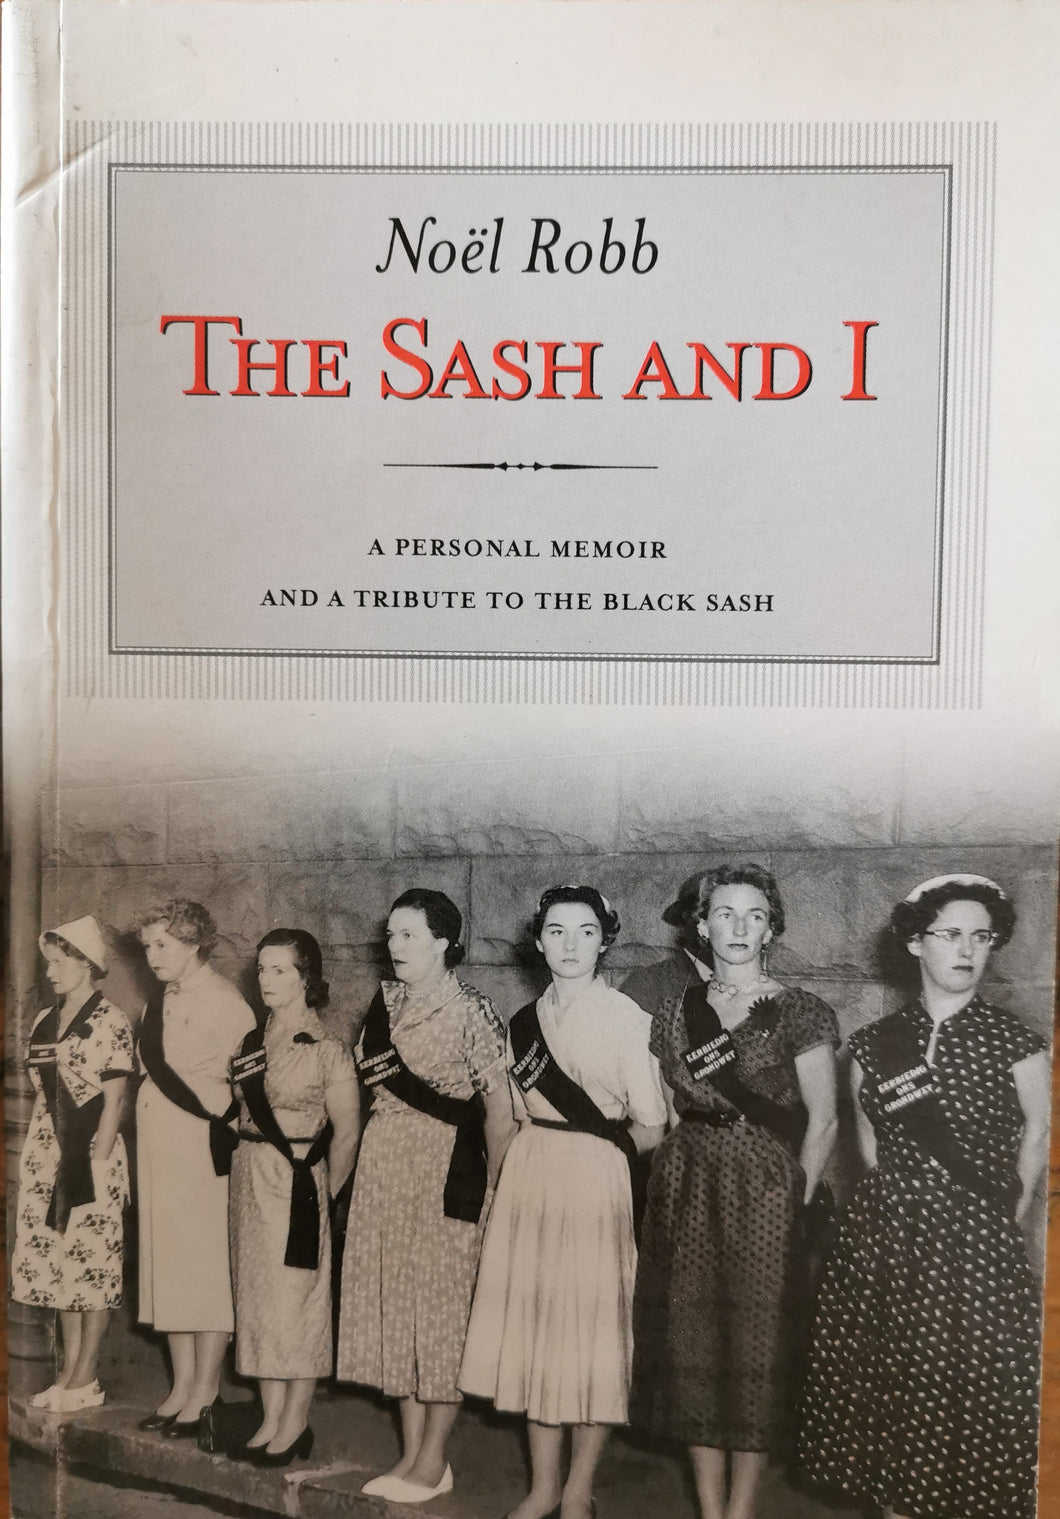 The Sash and I: A Personal Memoir and Tribute to the Black Sash - Noel Robb